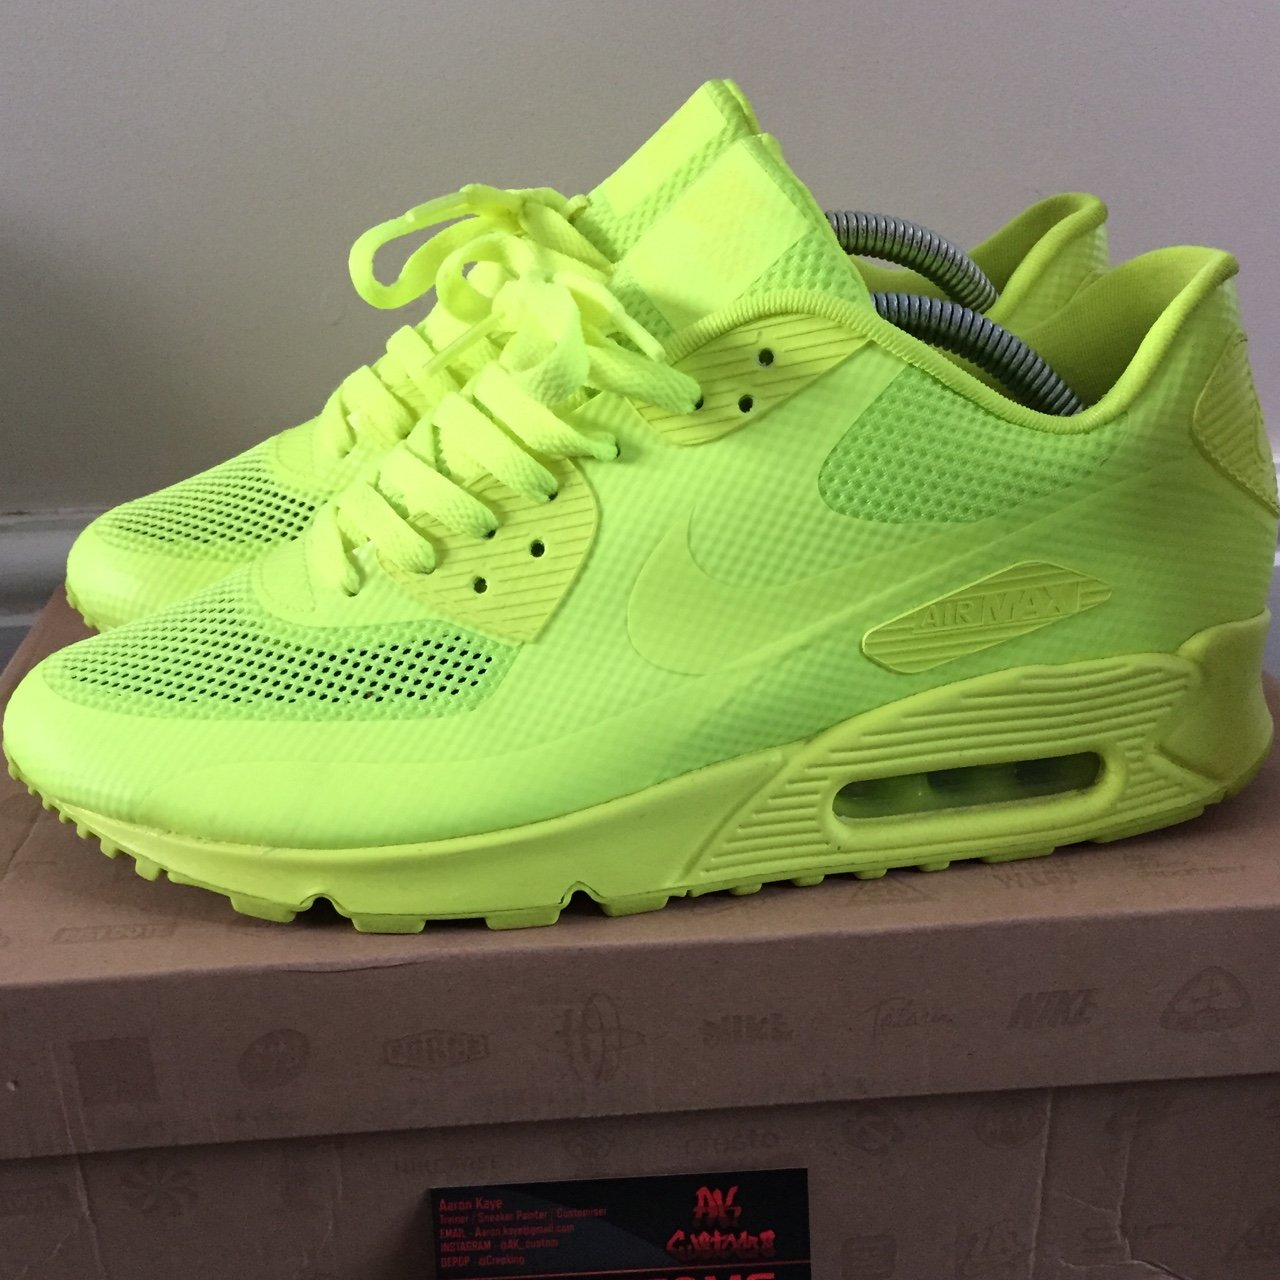 ea5ff5312be7d Uk8 Nike Depop Max 510 8 ConditionTags Air 90 Hyperfuse  volt  wOmNv8n0